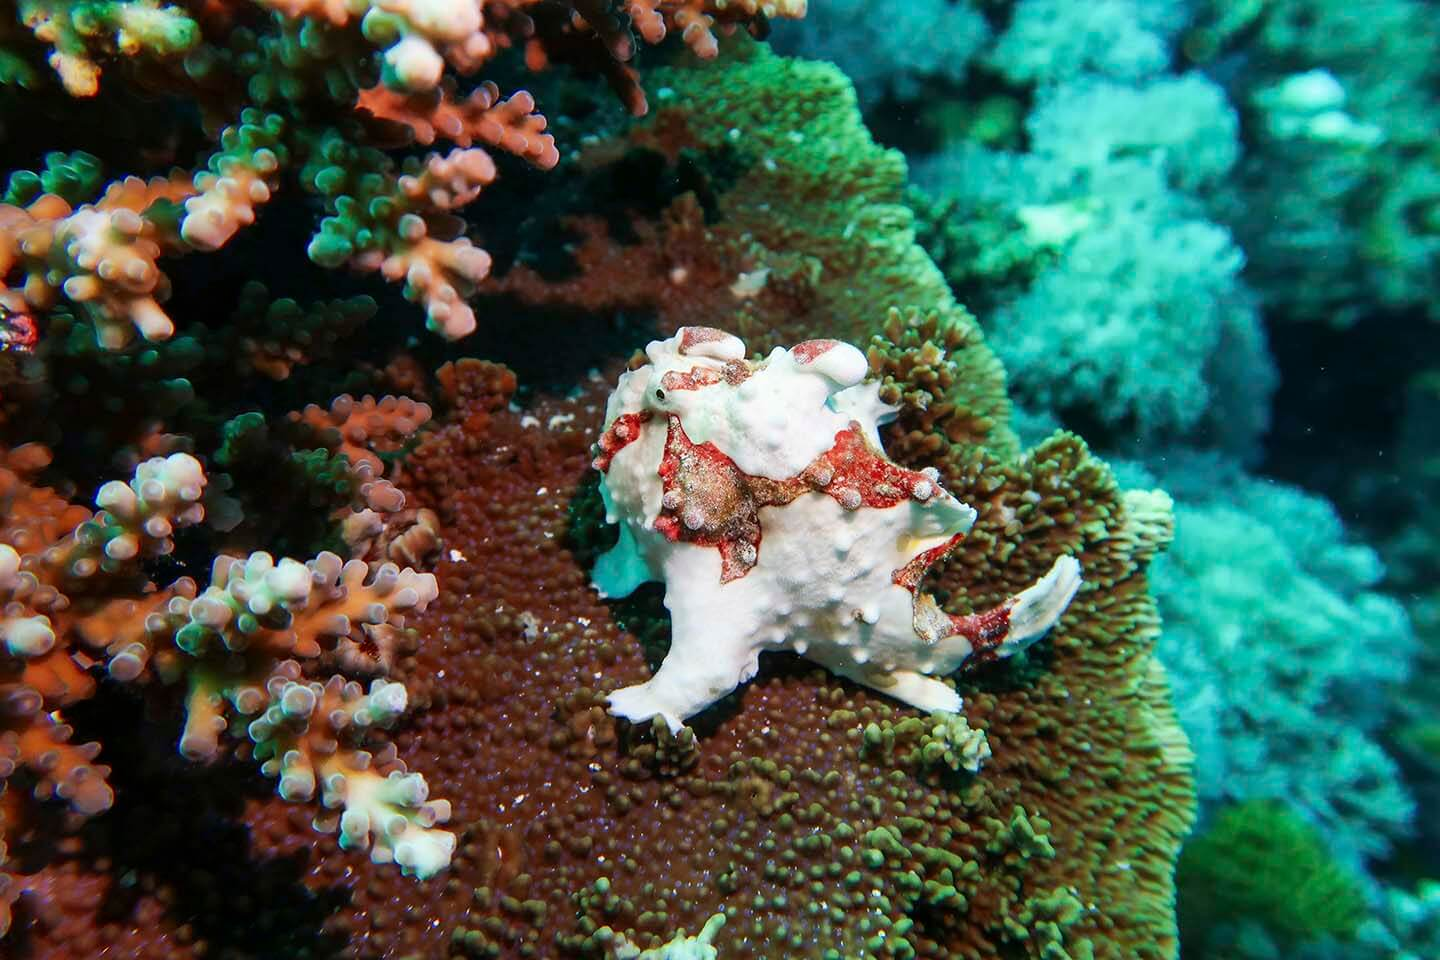 White and Red Warty frogfish (Antennarius maculatus) on a coral in Balicasag, Bohol Philippines